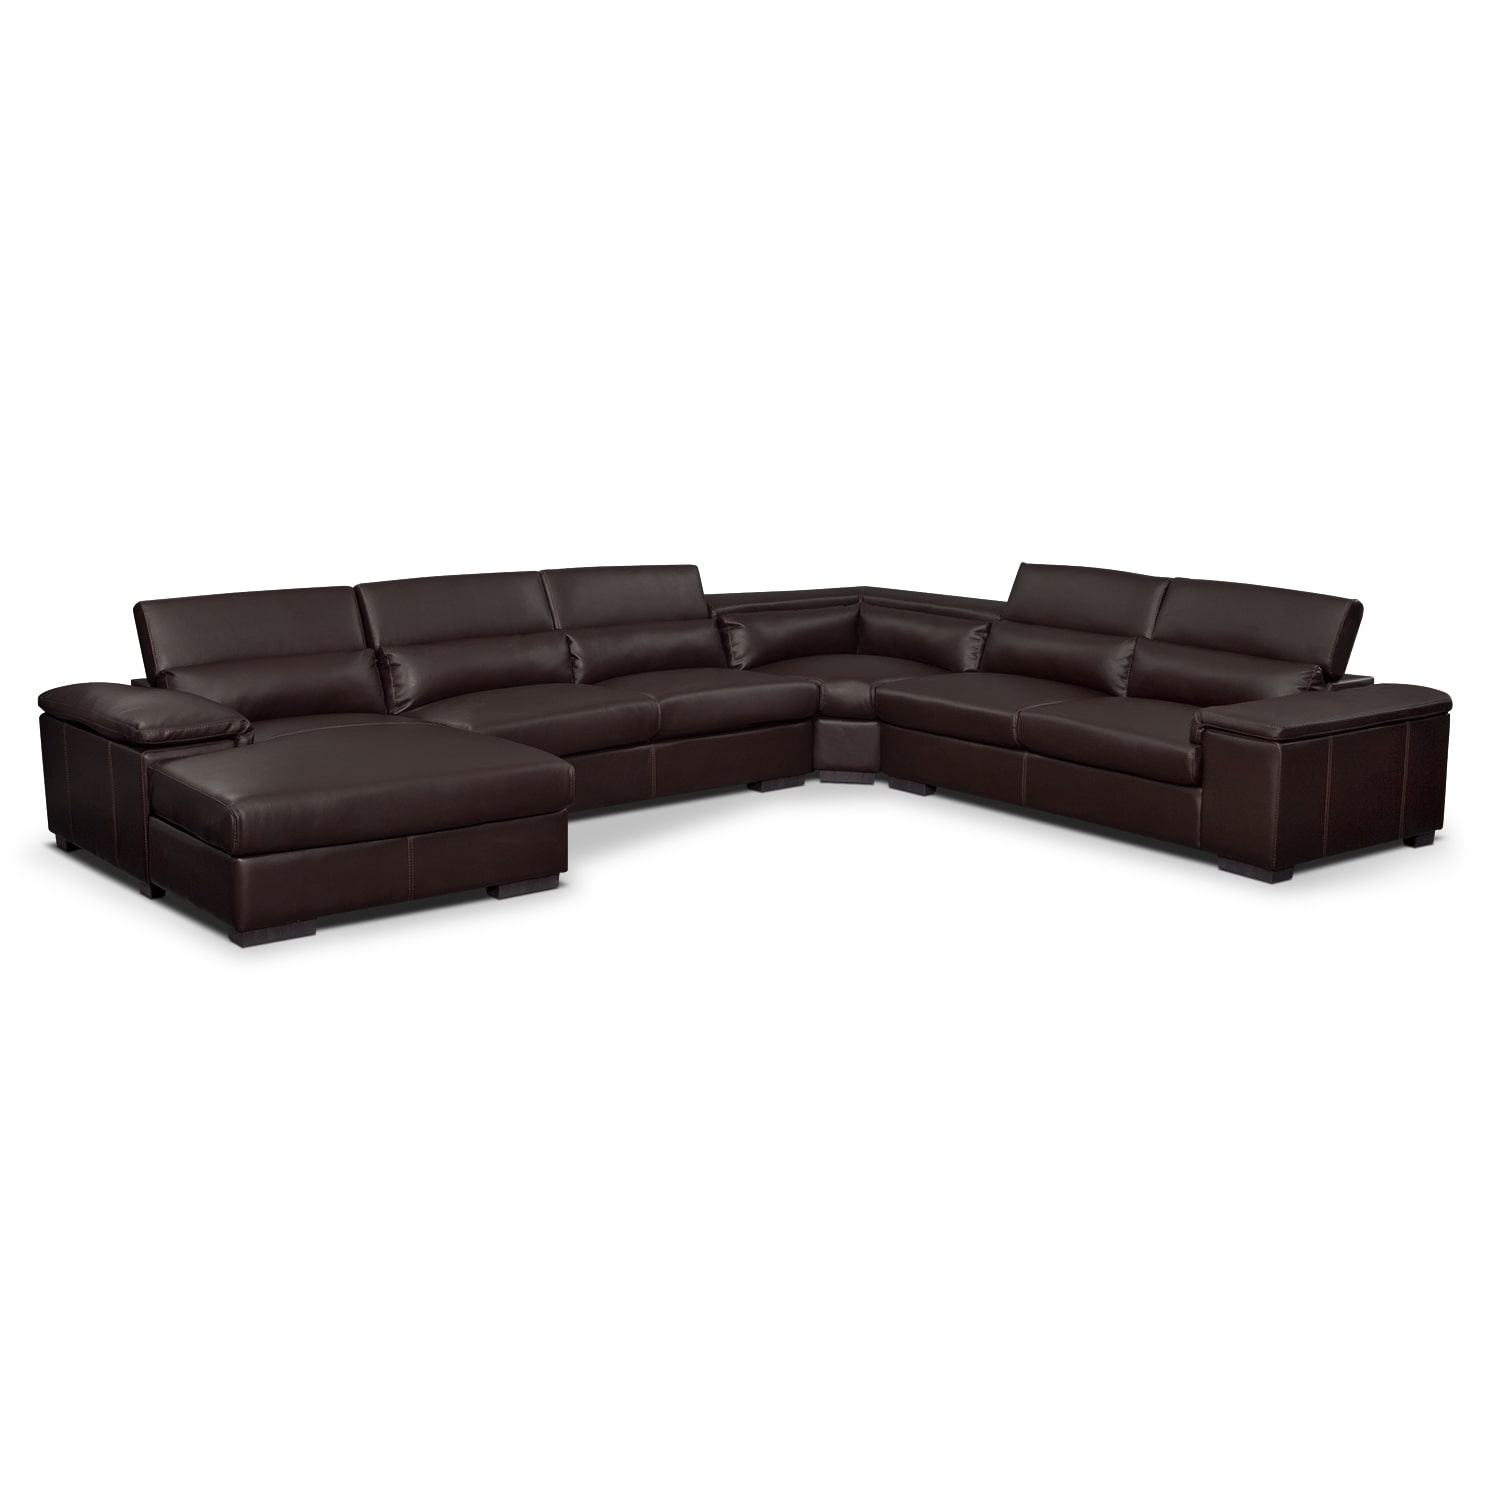 Ventana II 4 Pc. Sectional (Reverse)